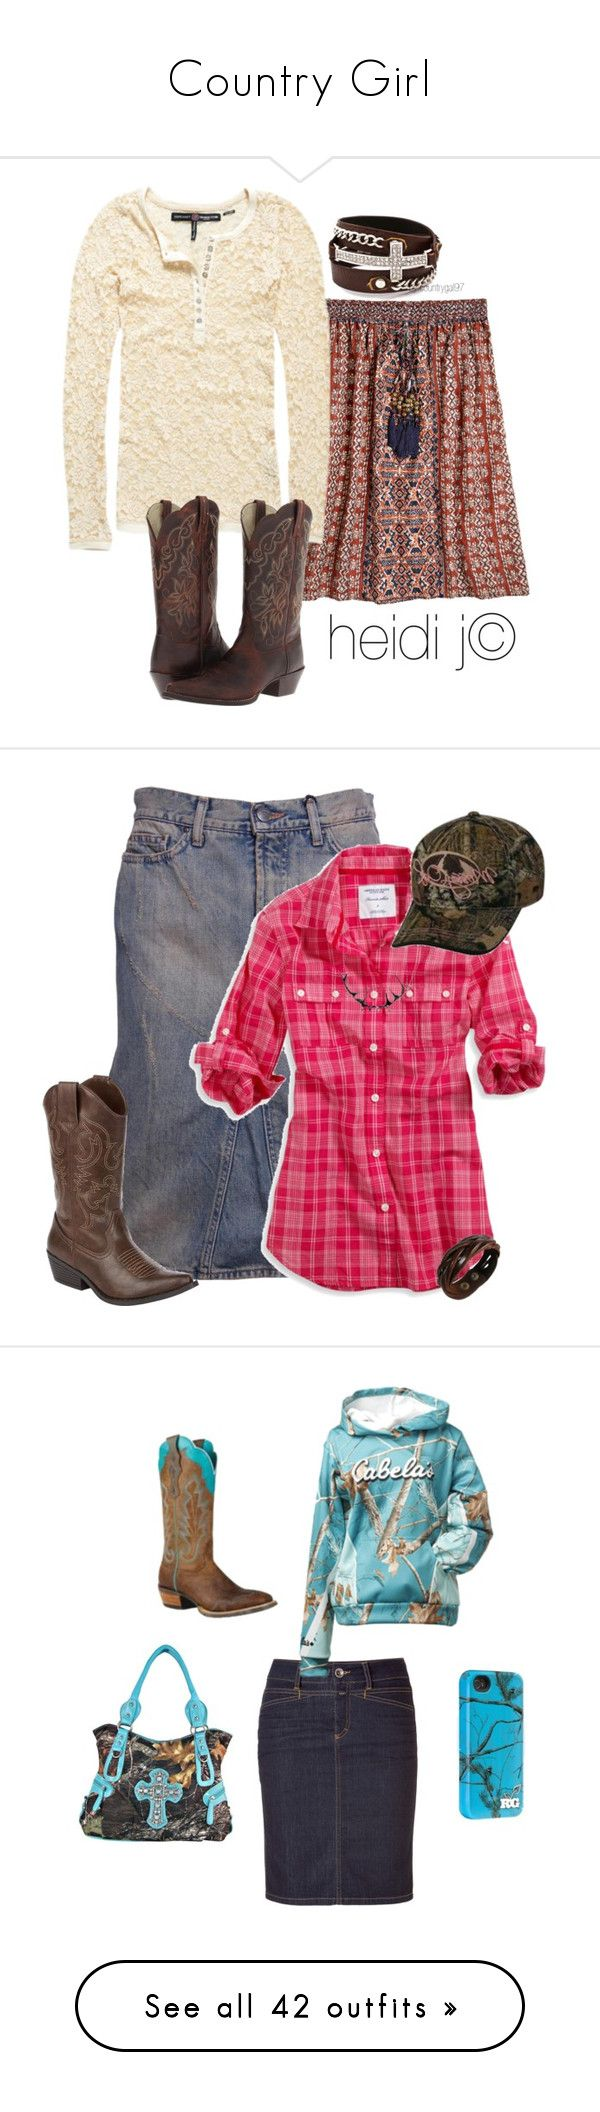 """Country Girl"" by dreamin-girl ❤ liked on Polyvore featuring Calypso St. Barth, Superdry, Ariat, country, Boots, CountryGal, countrygal97, heidij, Roberto Cavalli and American Eagle Outfitters"